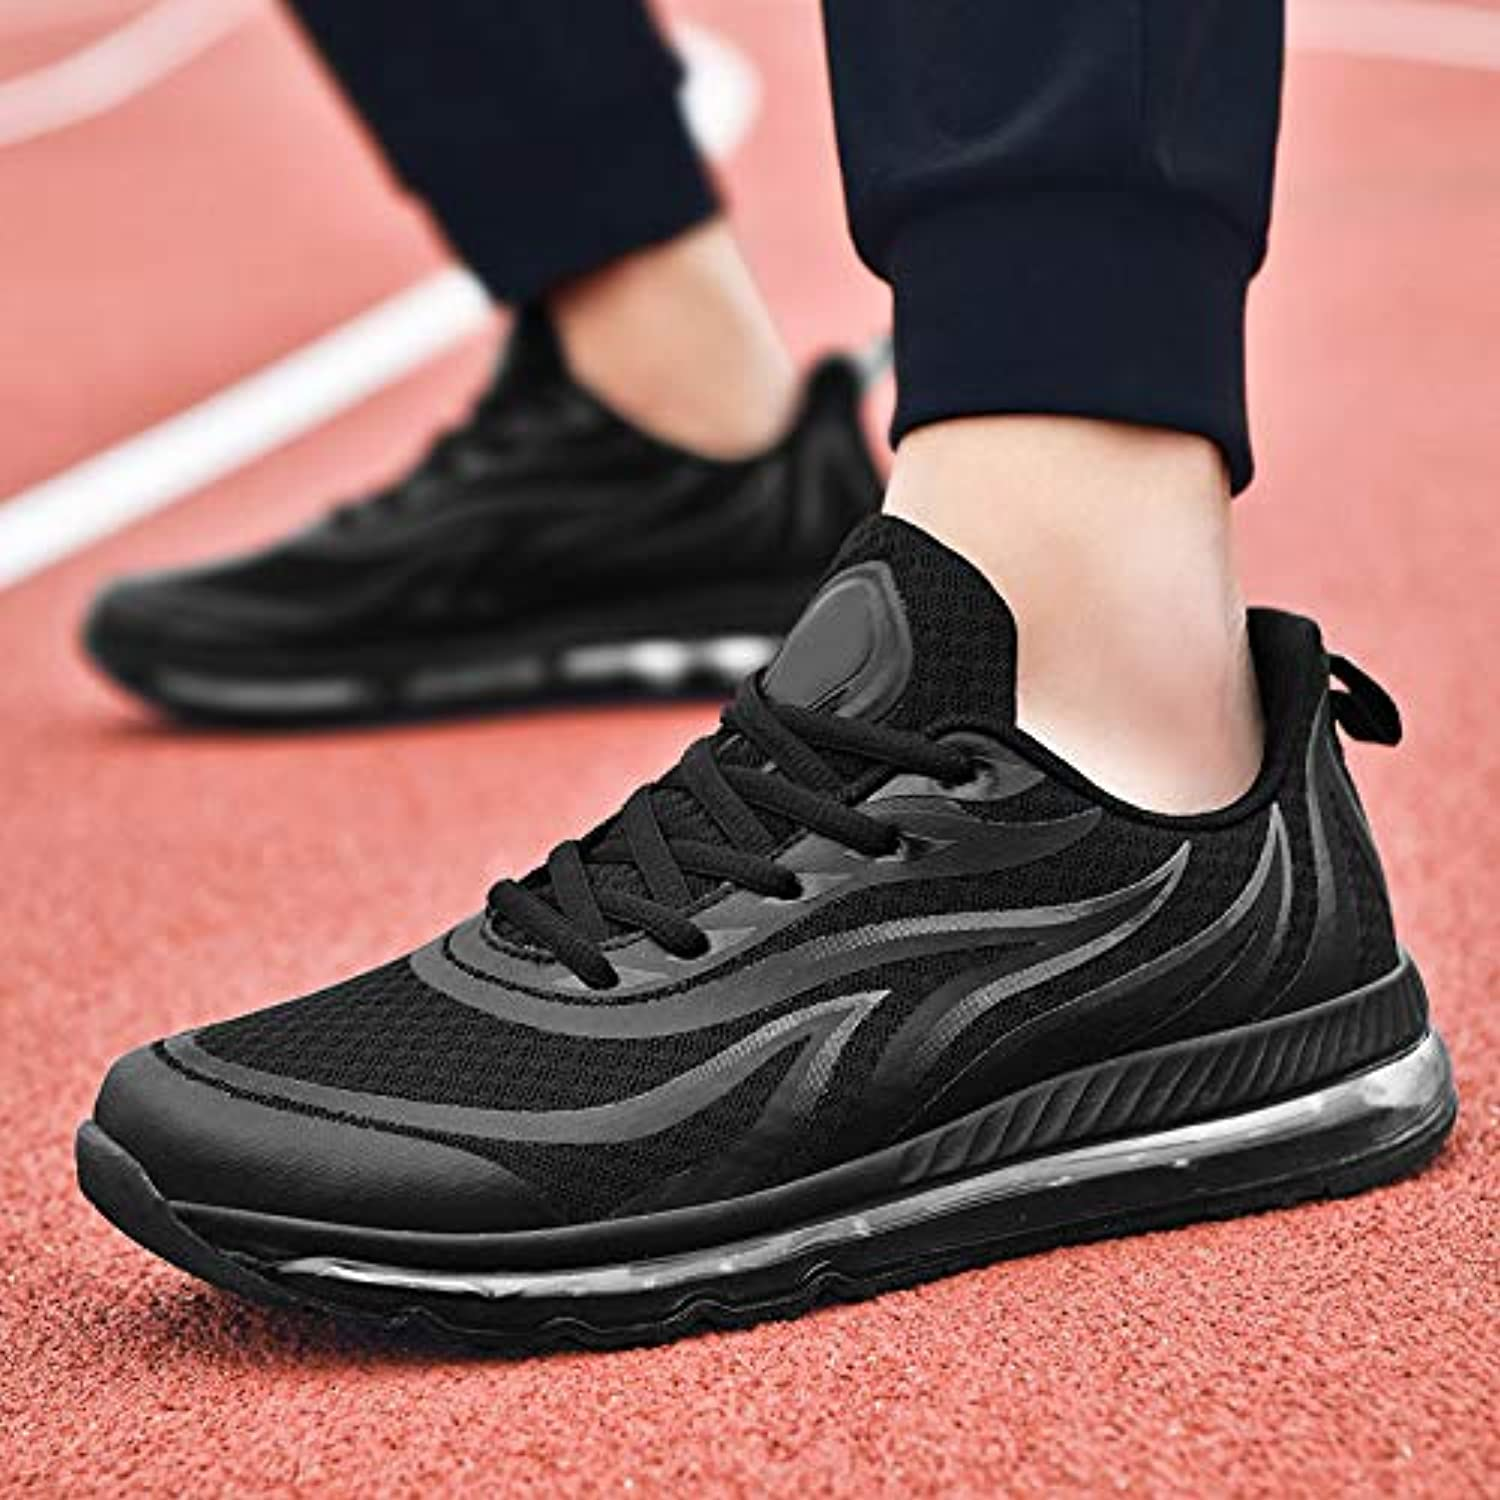 LOVDRAM Men's shoes Men'S shoes Full Palm Cushion shoes Spring New Sports shoes Student Running shoes Autumn Casual shoes